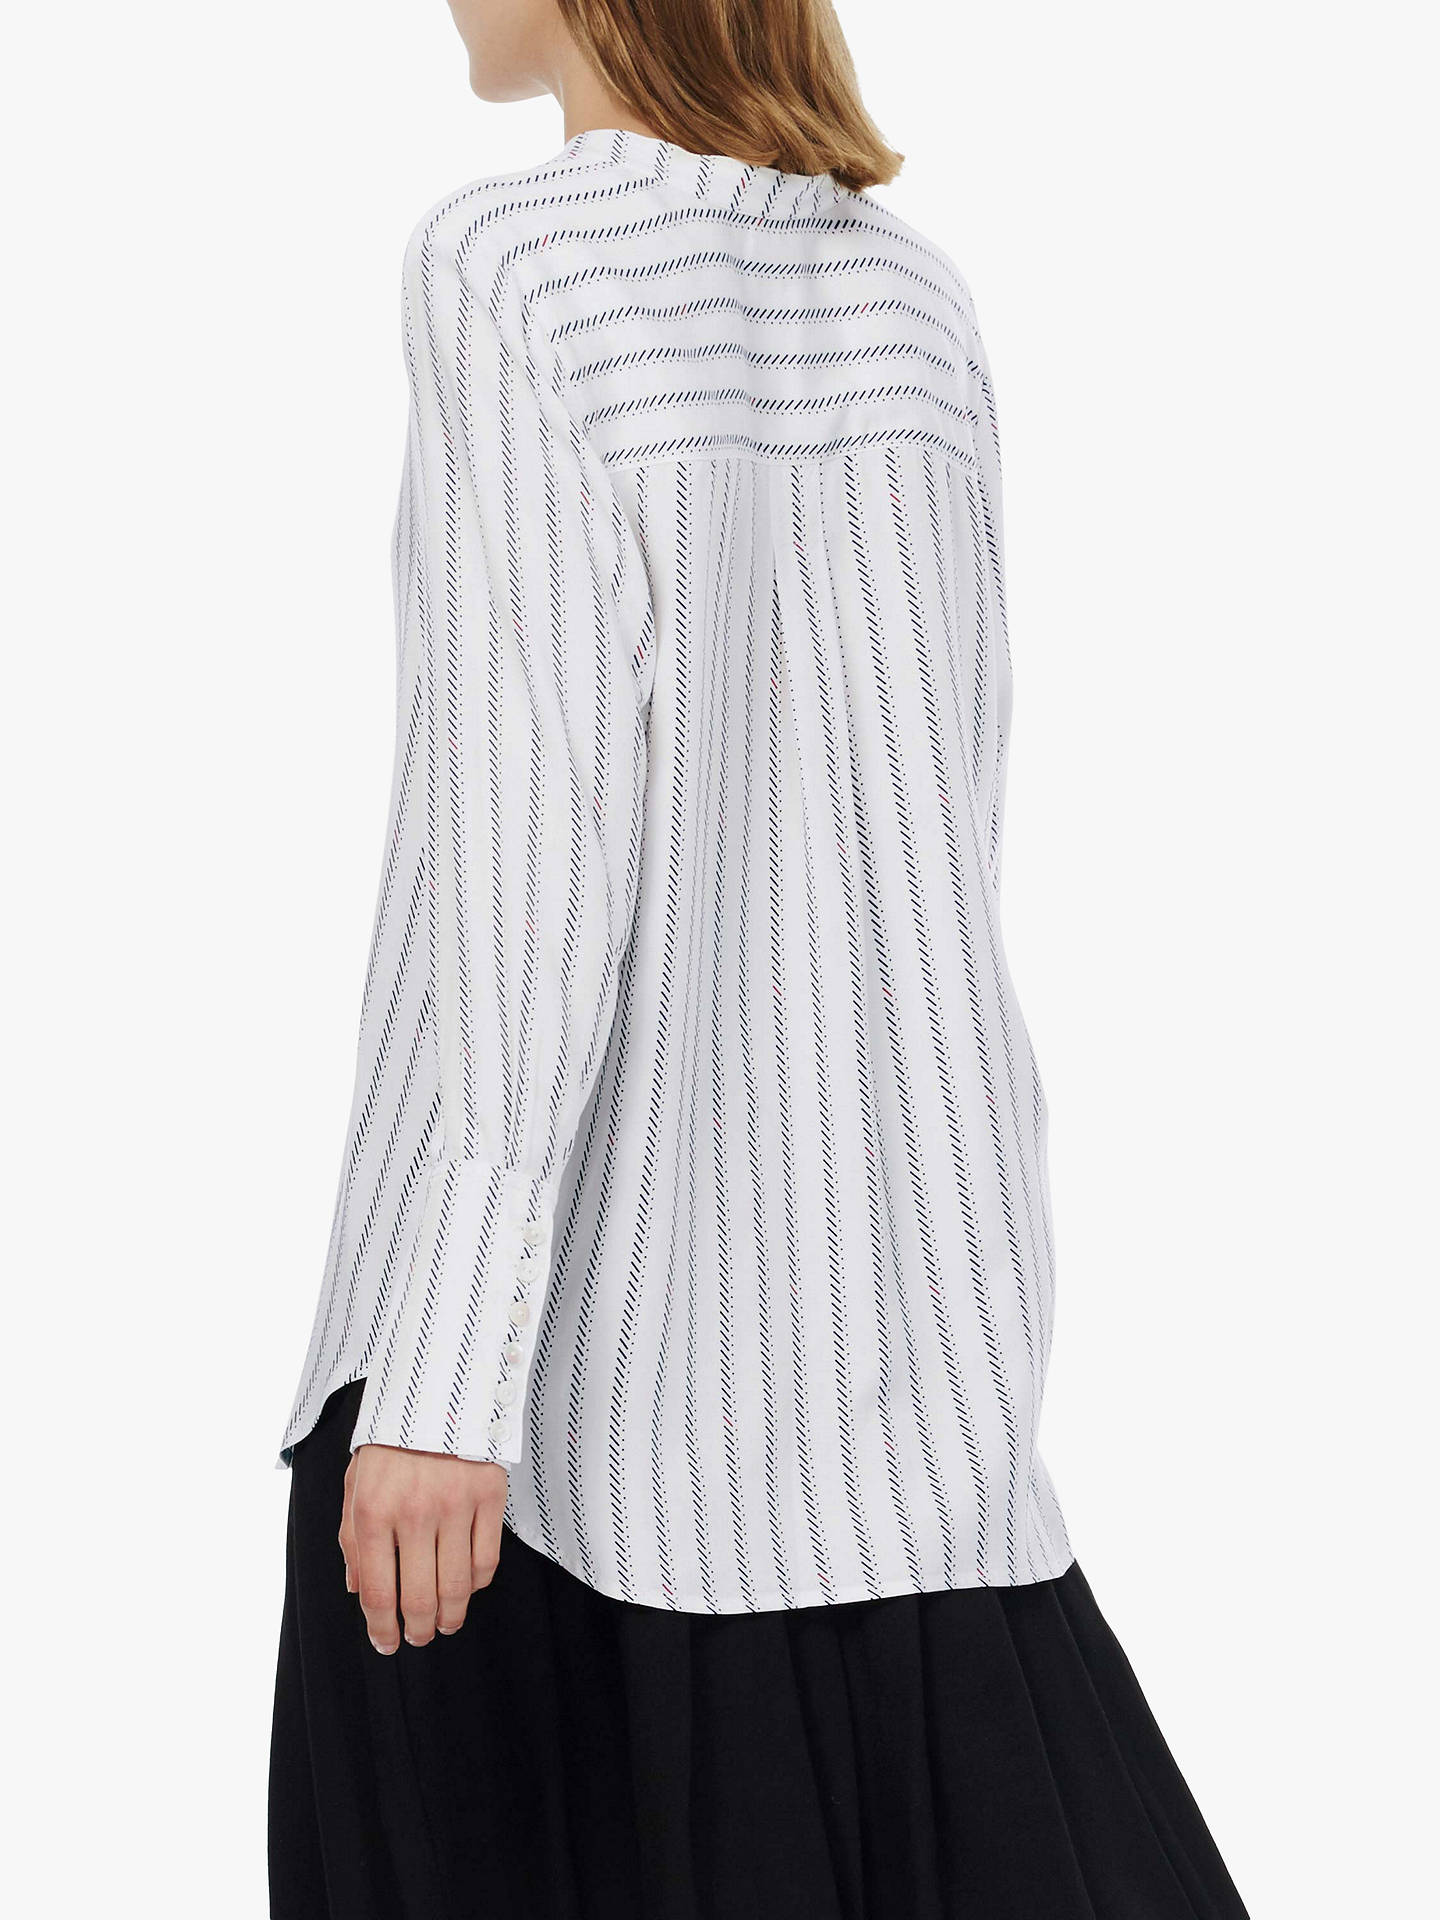 BuyBrora Graphic Stripe Tunic Dress, Ivory/Black, 14 Online at johnlewis.com